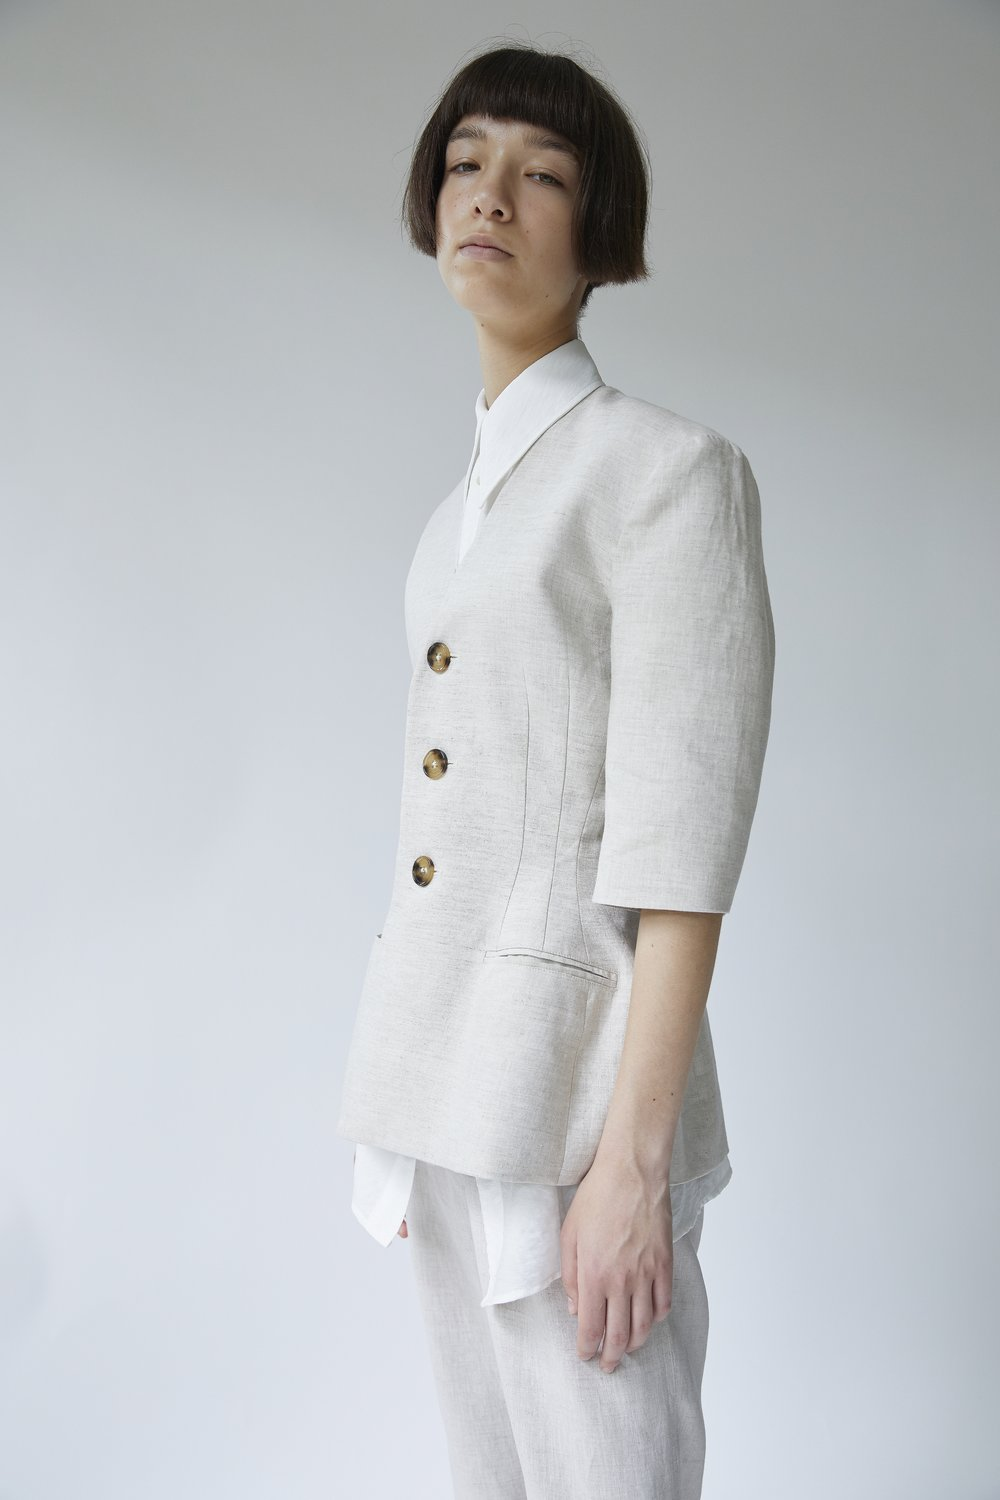 ARNE   cropped-sleeve jacket worn with ADA short-sleeve shirt in CHALK